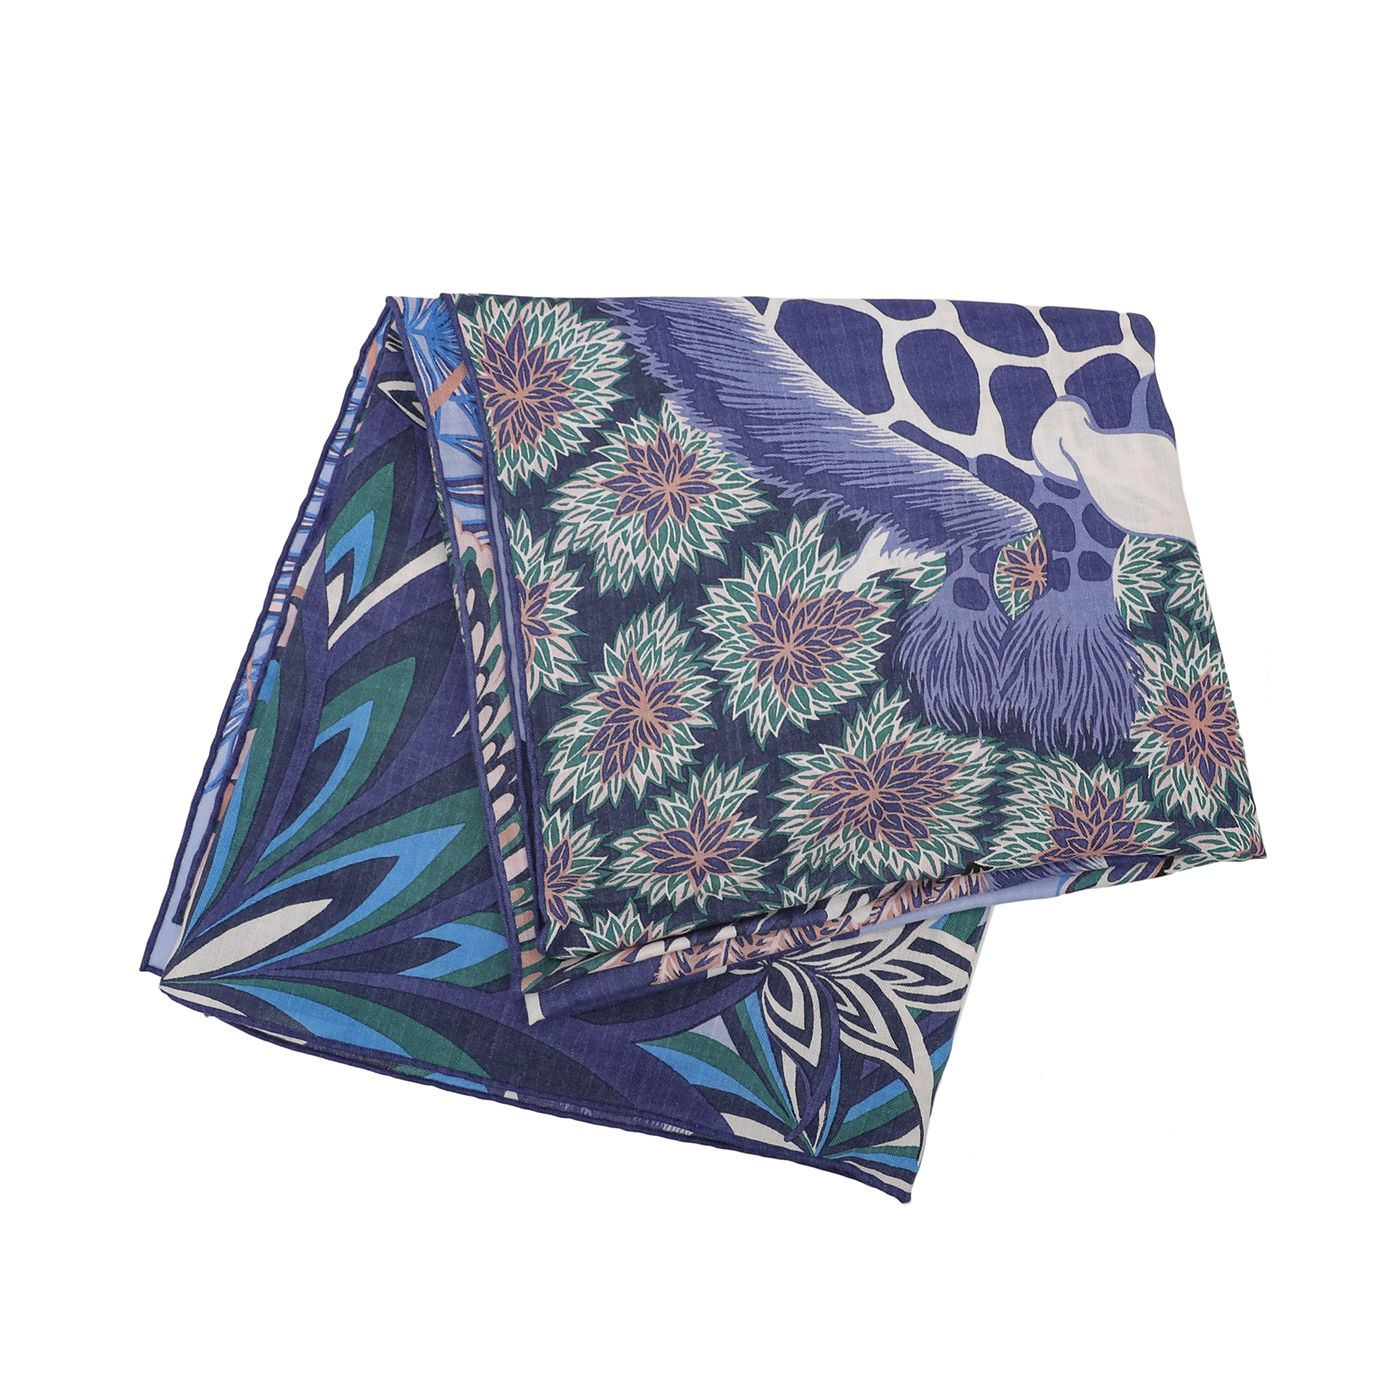 Hermes Bicolor The Three Graces Shawl